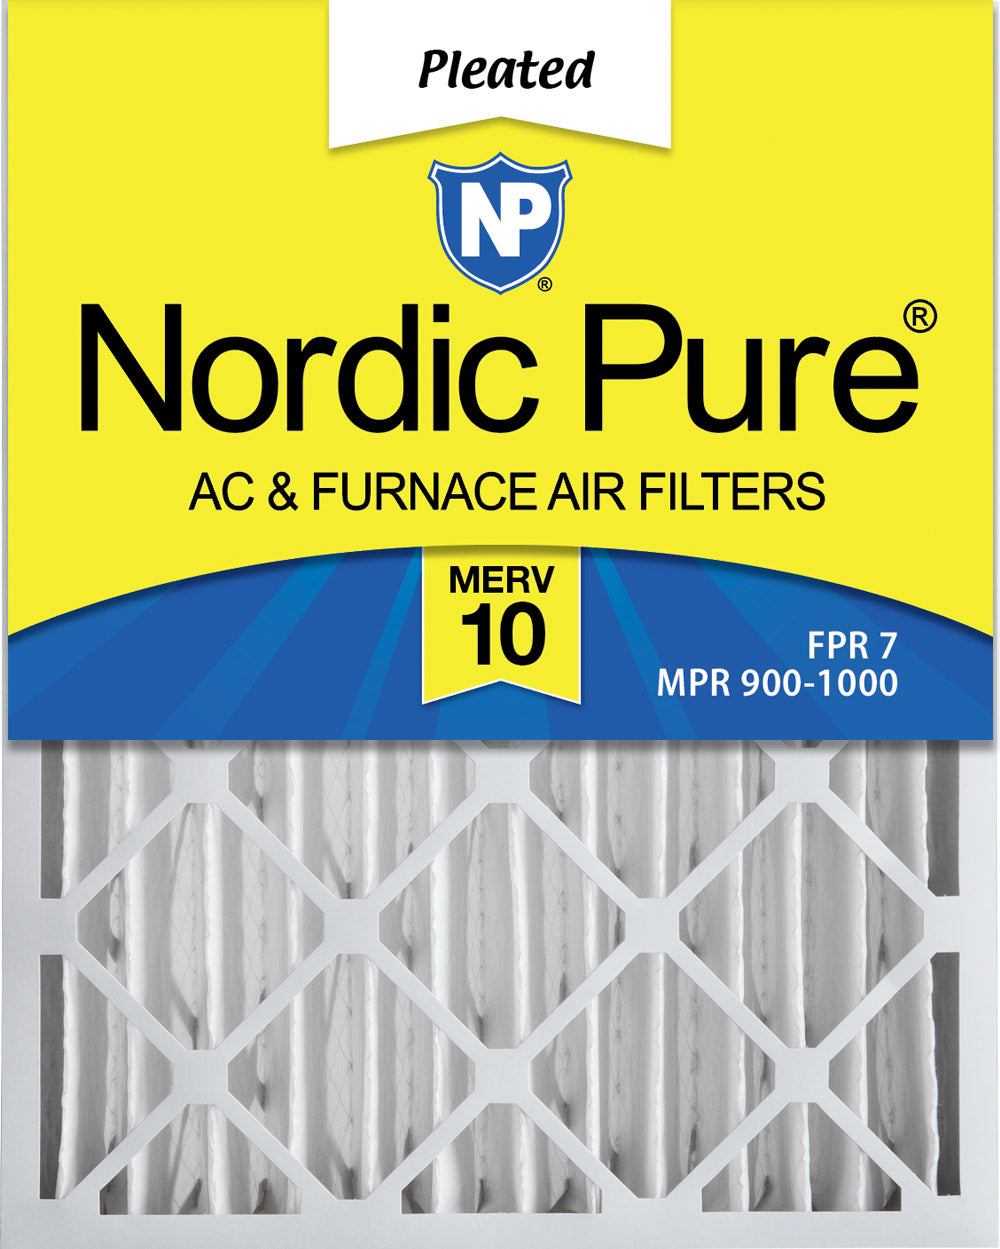 16x20x4 (3 5/8) Pleated MERV 10 Air Filters 2 Pack